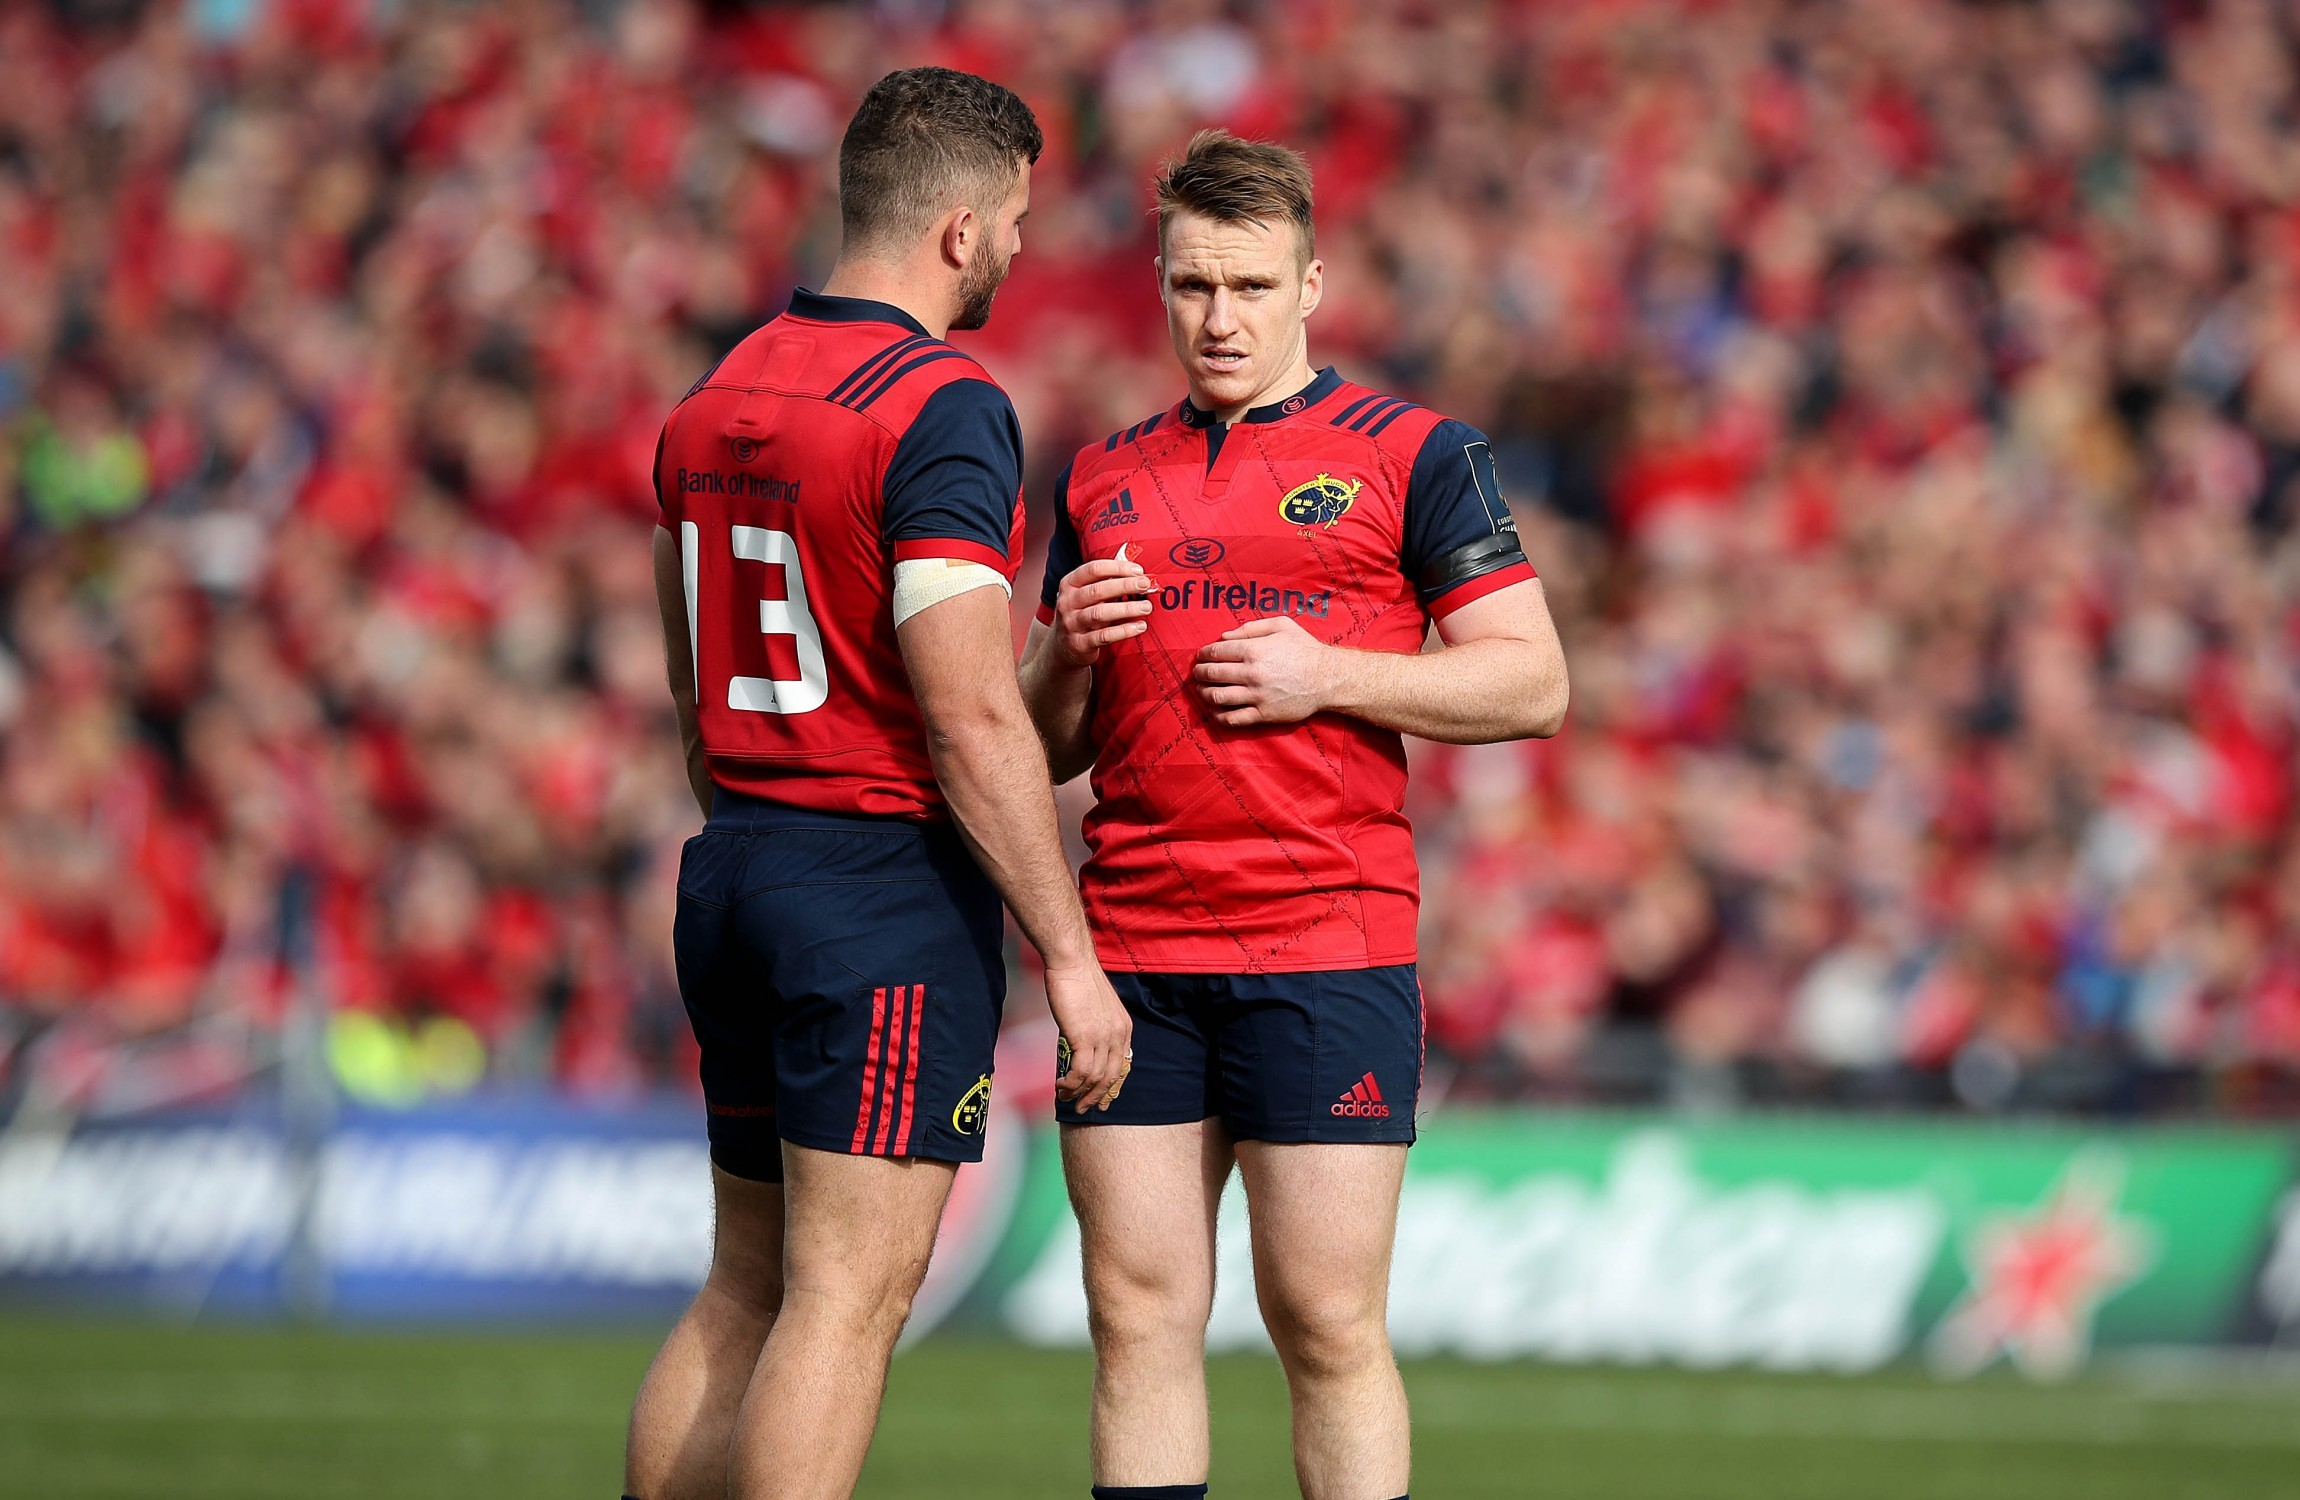 Munster finish the PRO12 season at the top of the table